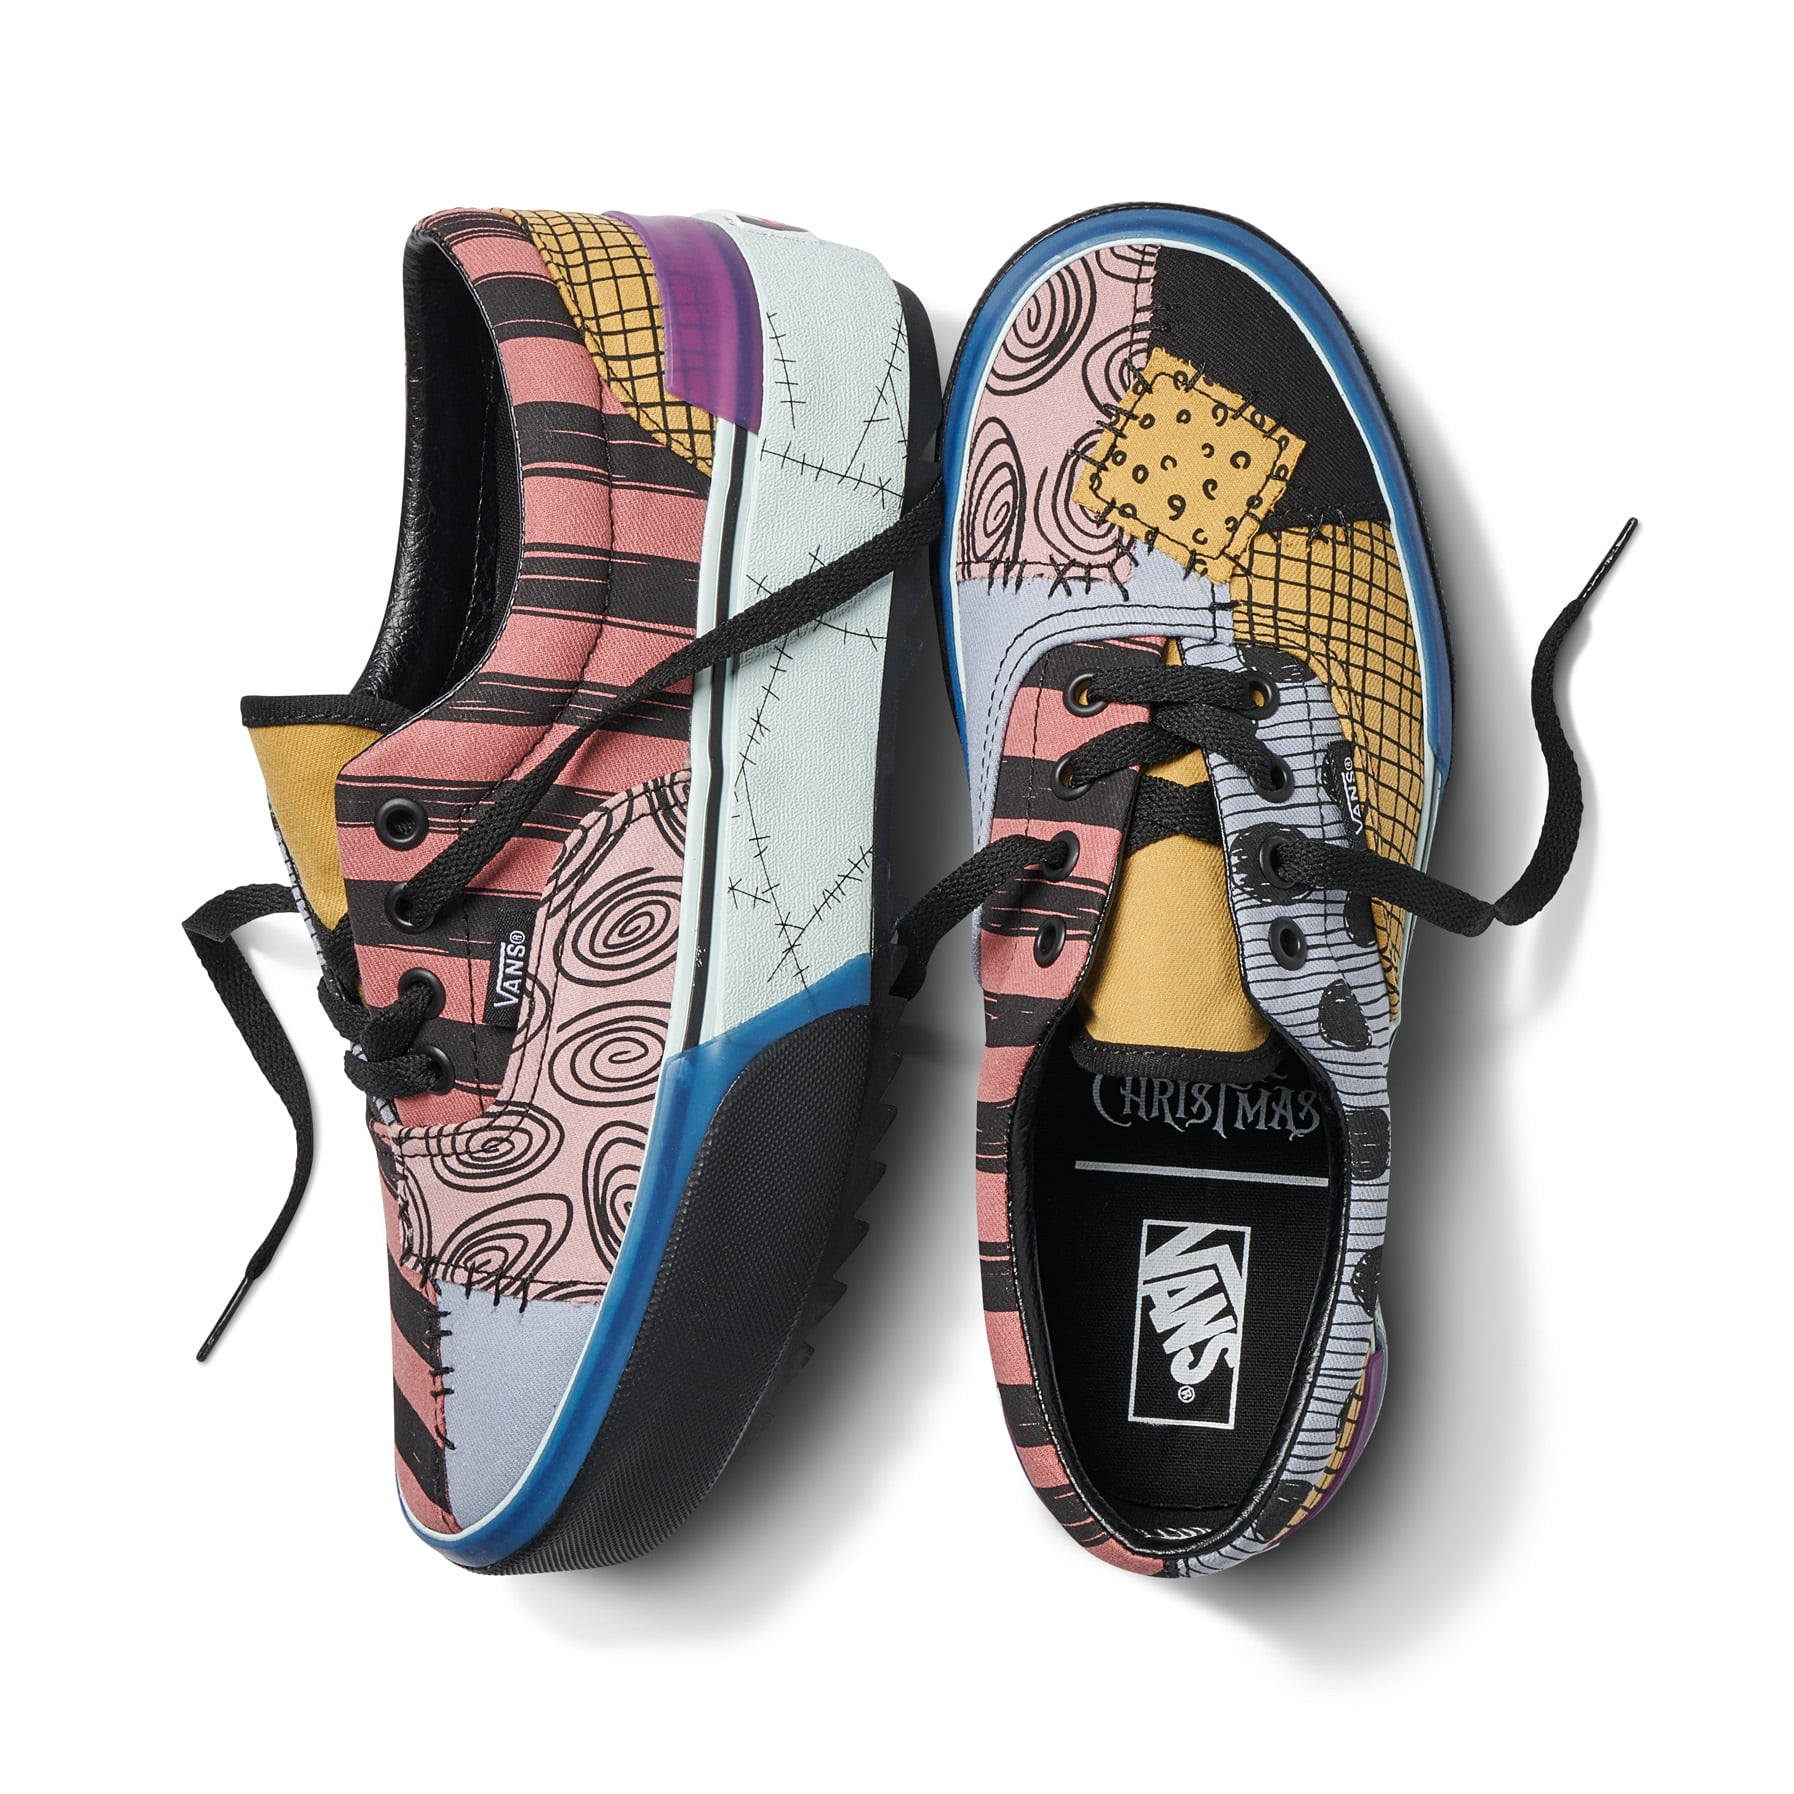 Shop Vans\u0027s Entire Nightmare Before Christmas Collection